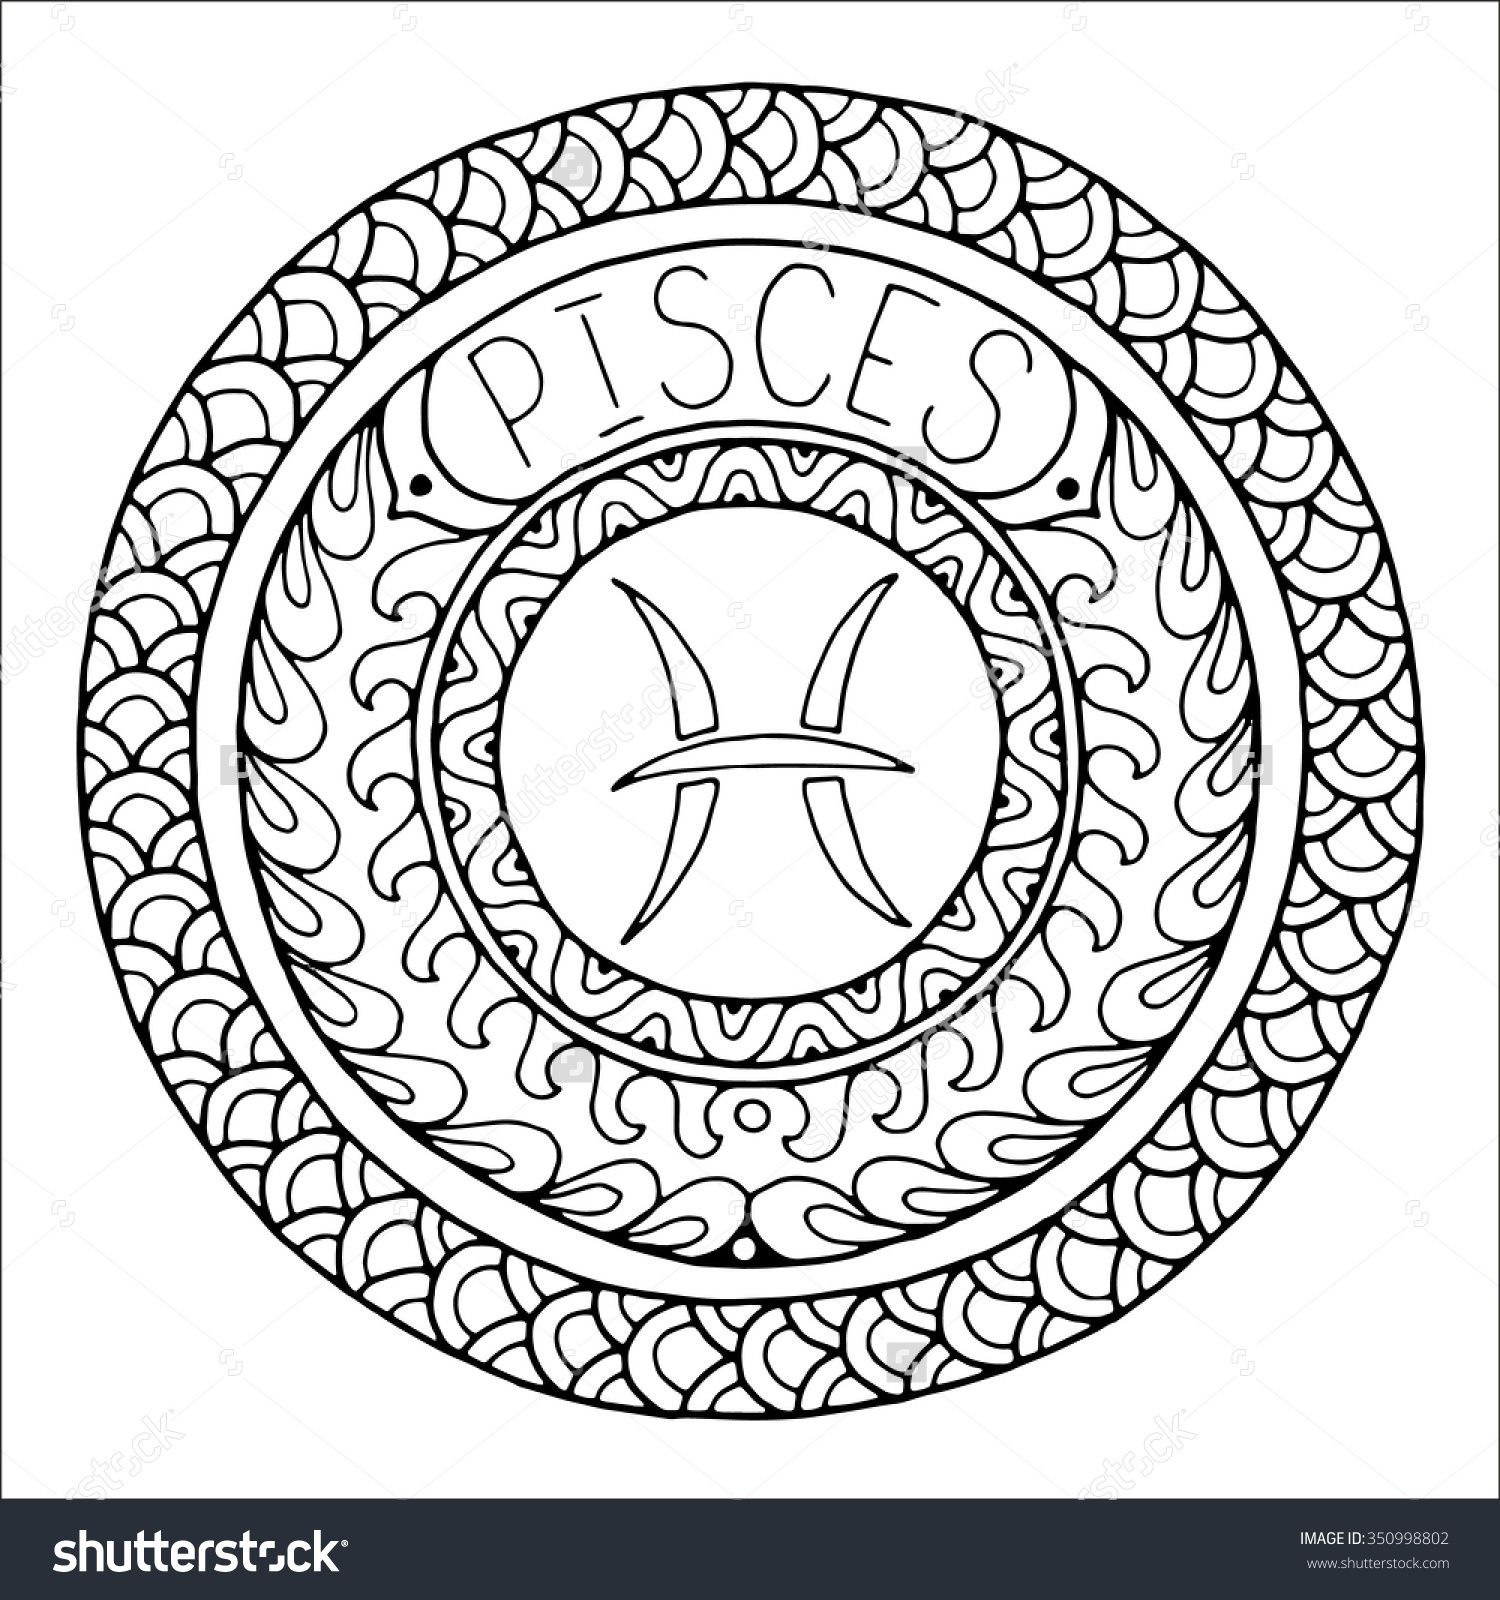 Zodiac Sign Of Pisces  Shutterstock   Tattoo